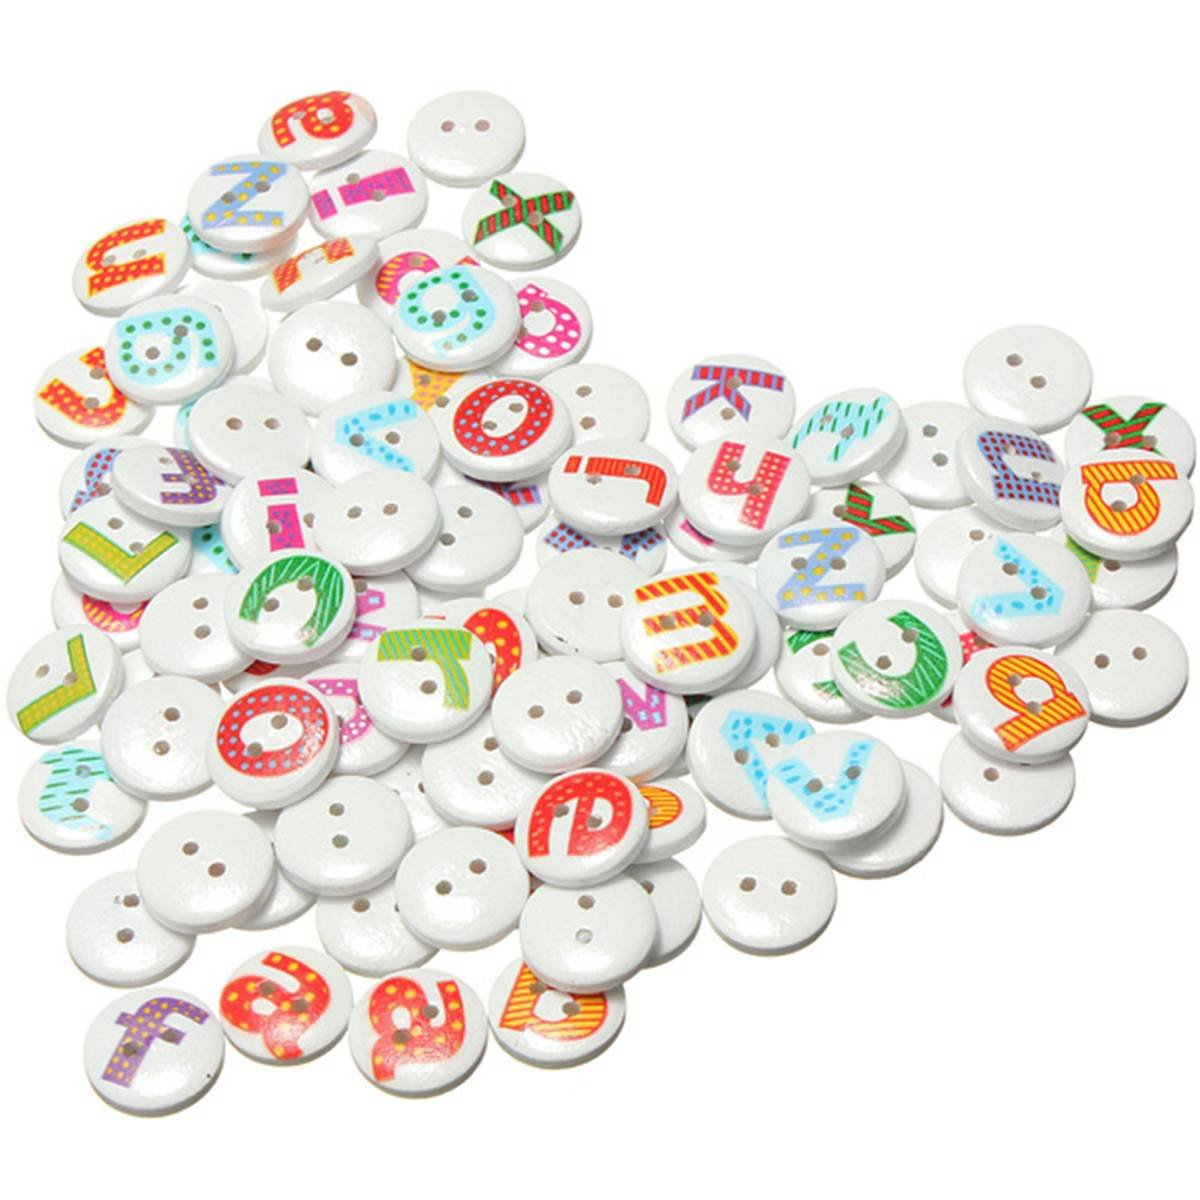 Best 100Pcs Mixed Painted Letter Alphabet Wooden Sewing Button Scrapbooking